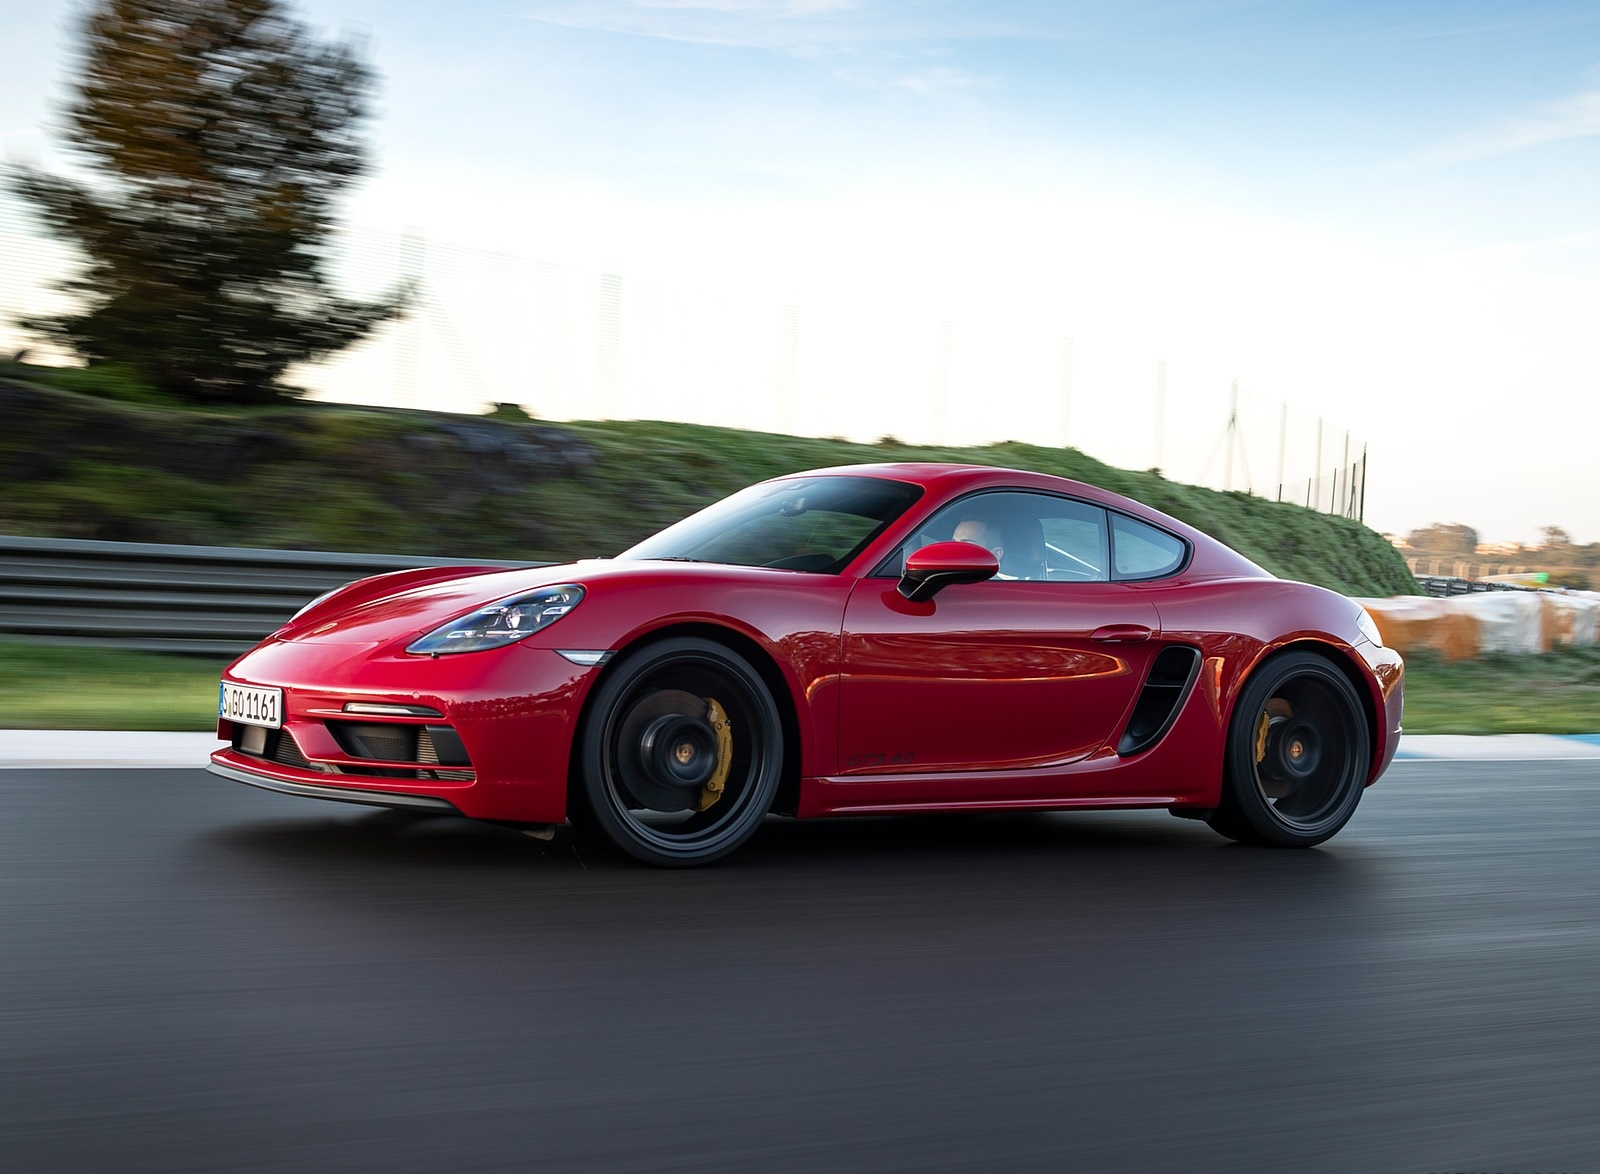 2020 Porsche 718 Cayman GTS 4.0 (Color: Carmine Red) Front Three-Quarter Wallpapers (5)